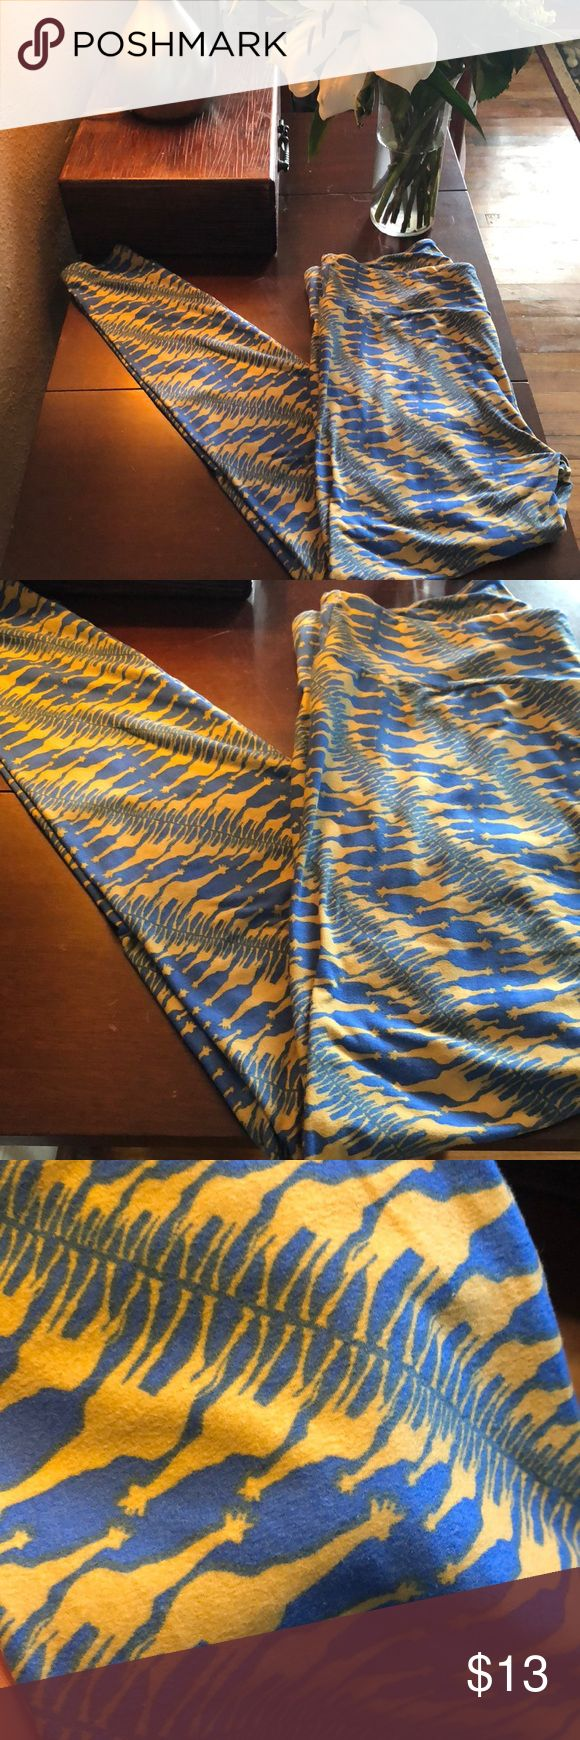 Lularoe giraffe blue and buttercup yellow leggings TC Lularoe giraffe blue and buttercup yellow leggings. EUC. Worn only a handful of times. LuLaRoe Pants Leggings